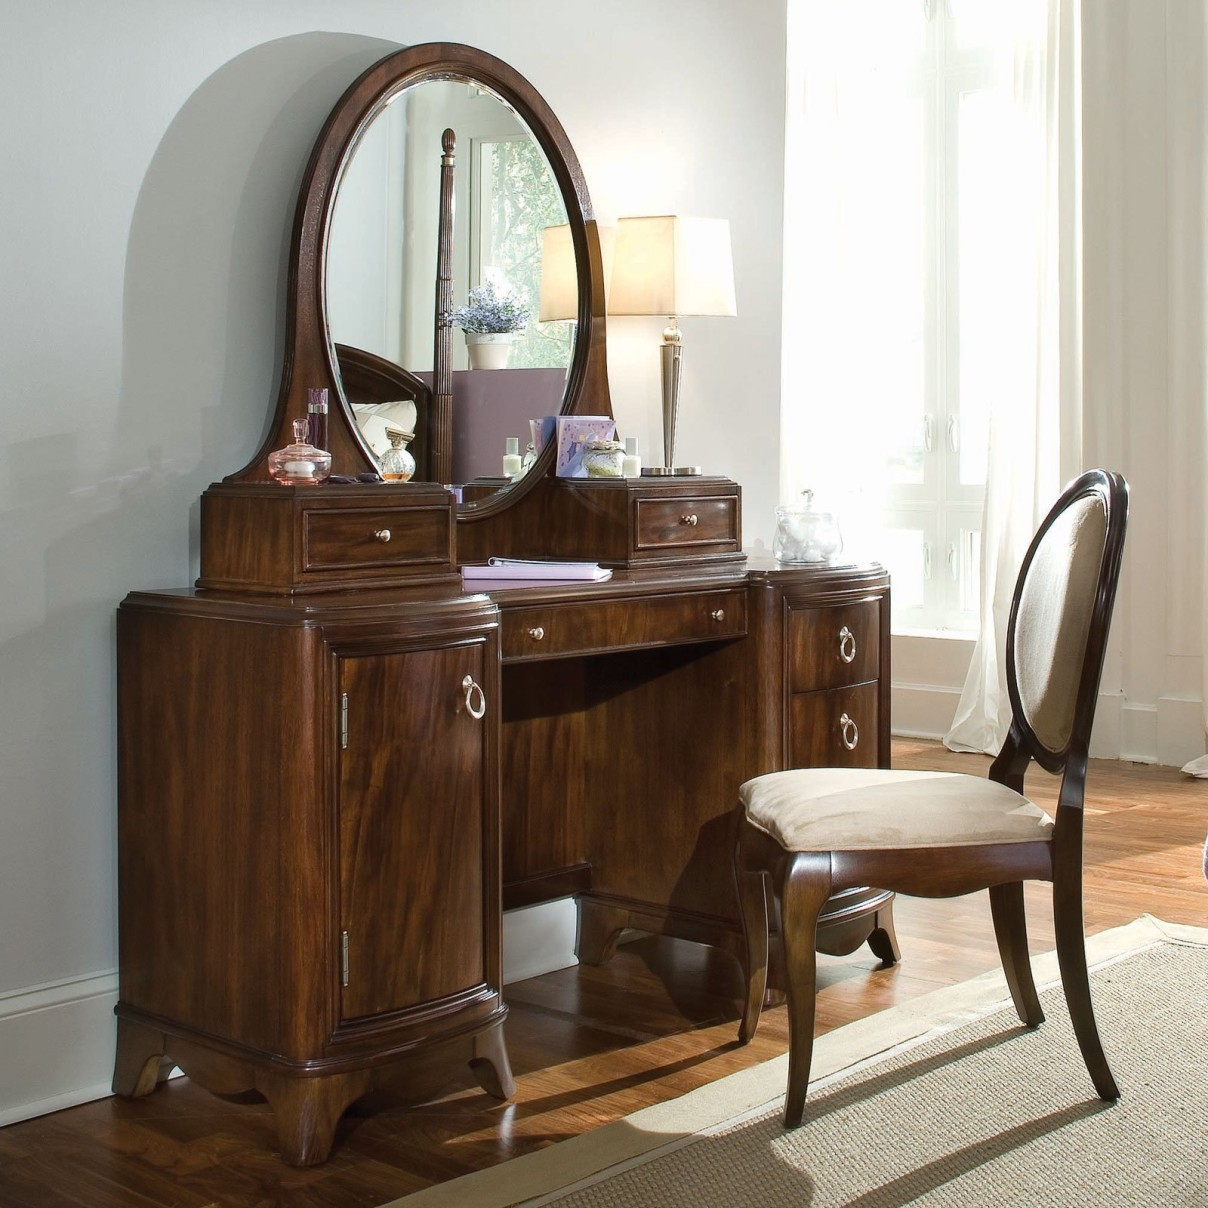 Image of: Antique Bedroom Vanity Chair